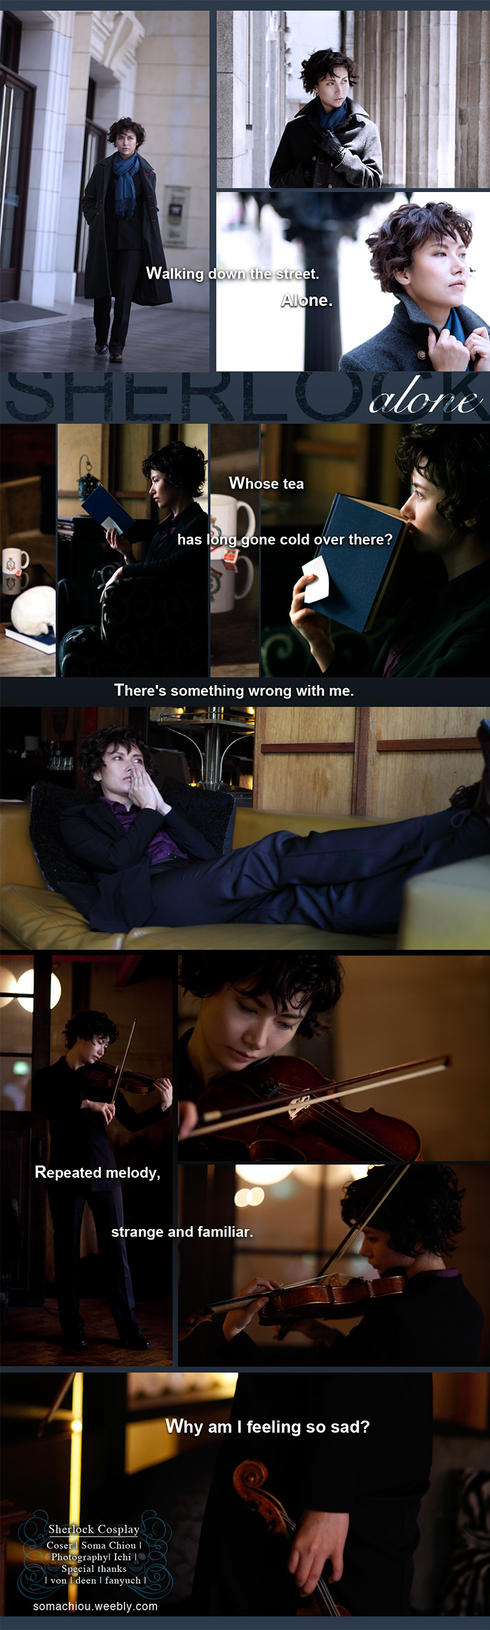 Sherlock cosplay_ Alone by somachiou